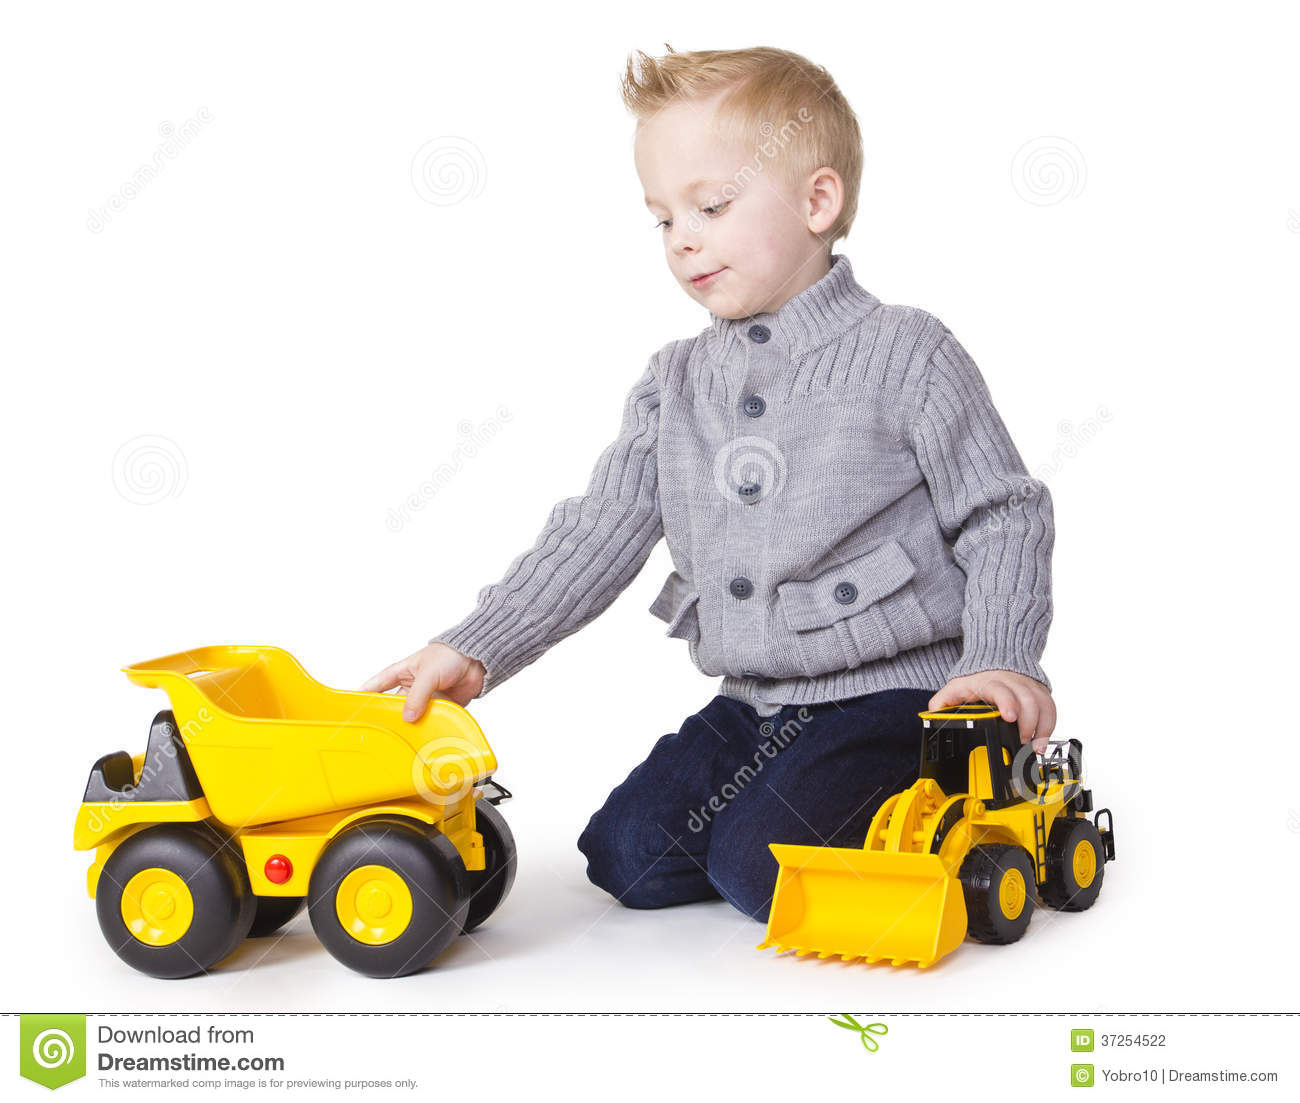 Toy Trucks For Boys : Cute boy playing with toy trucks stock photo image